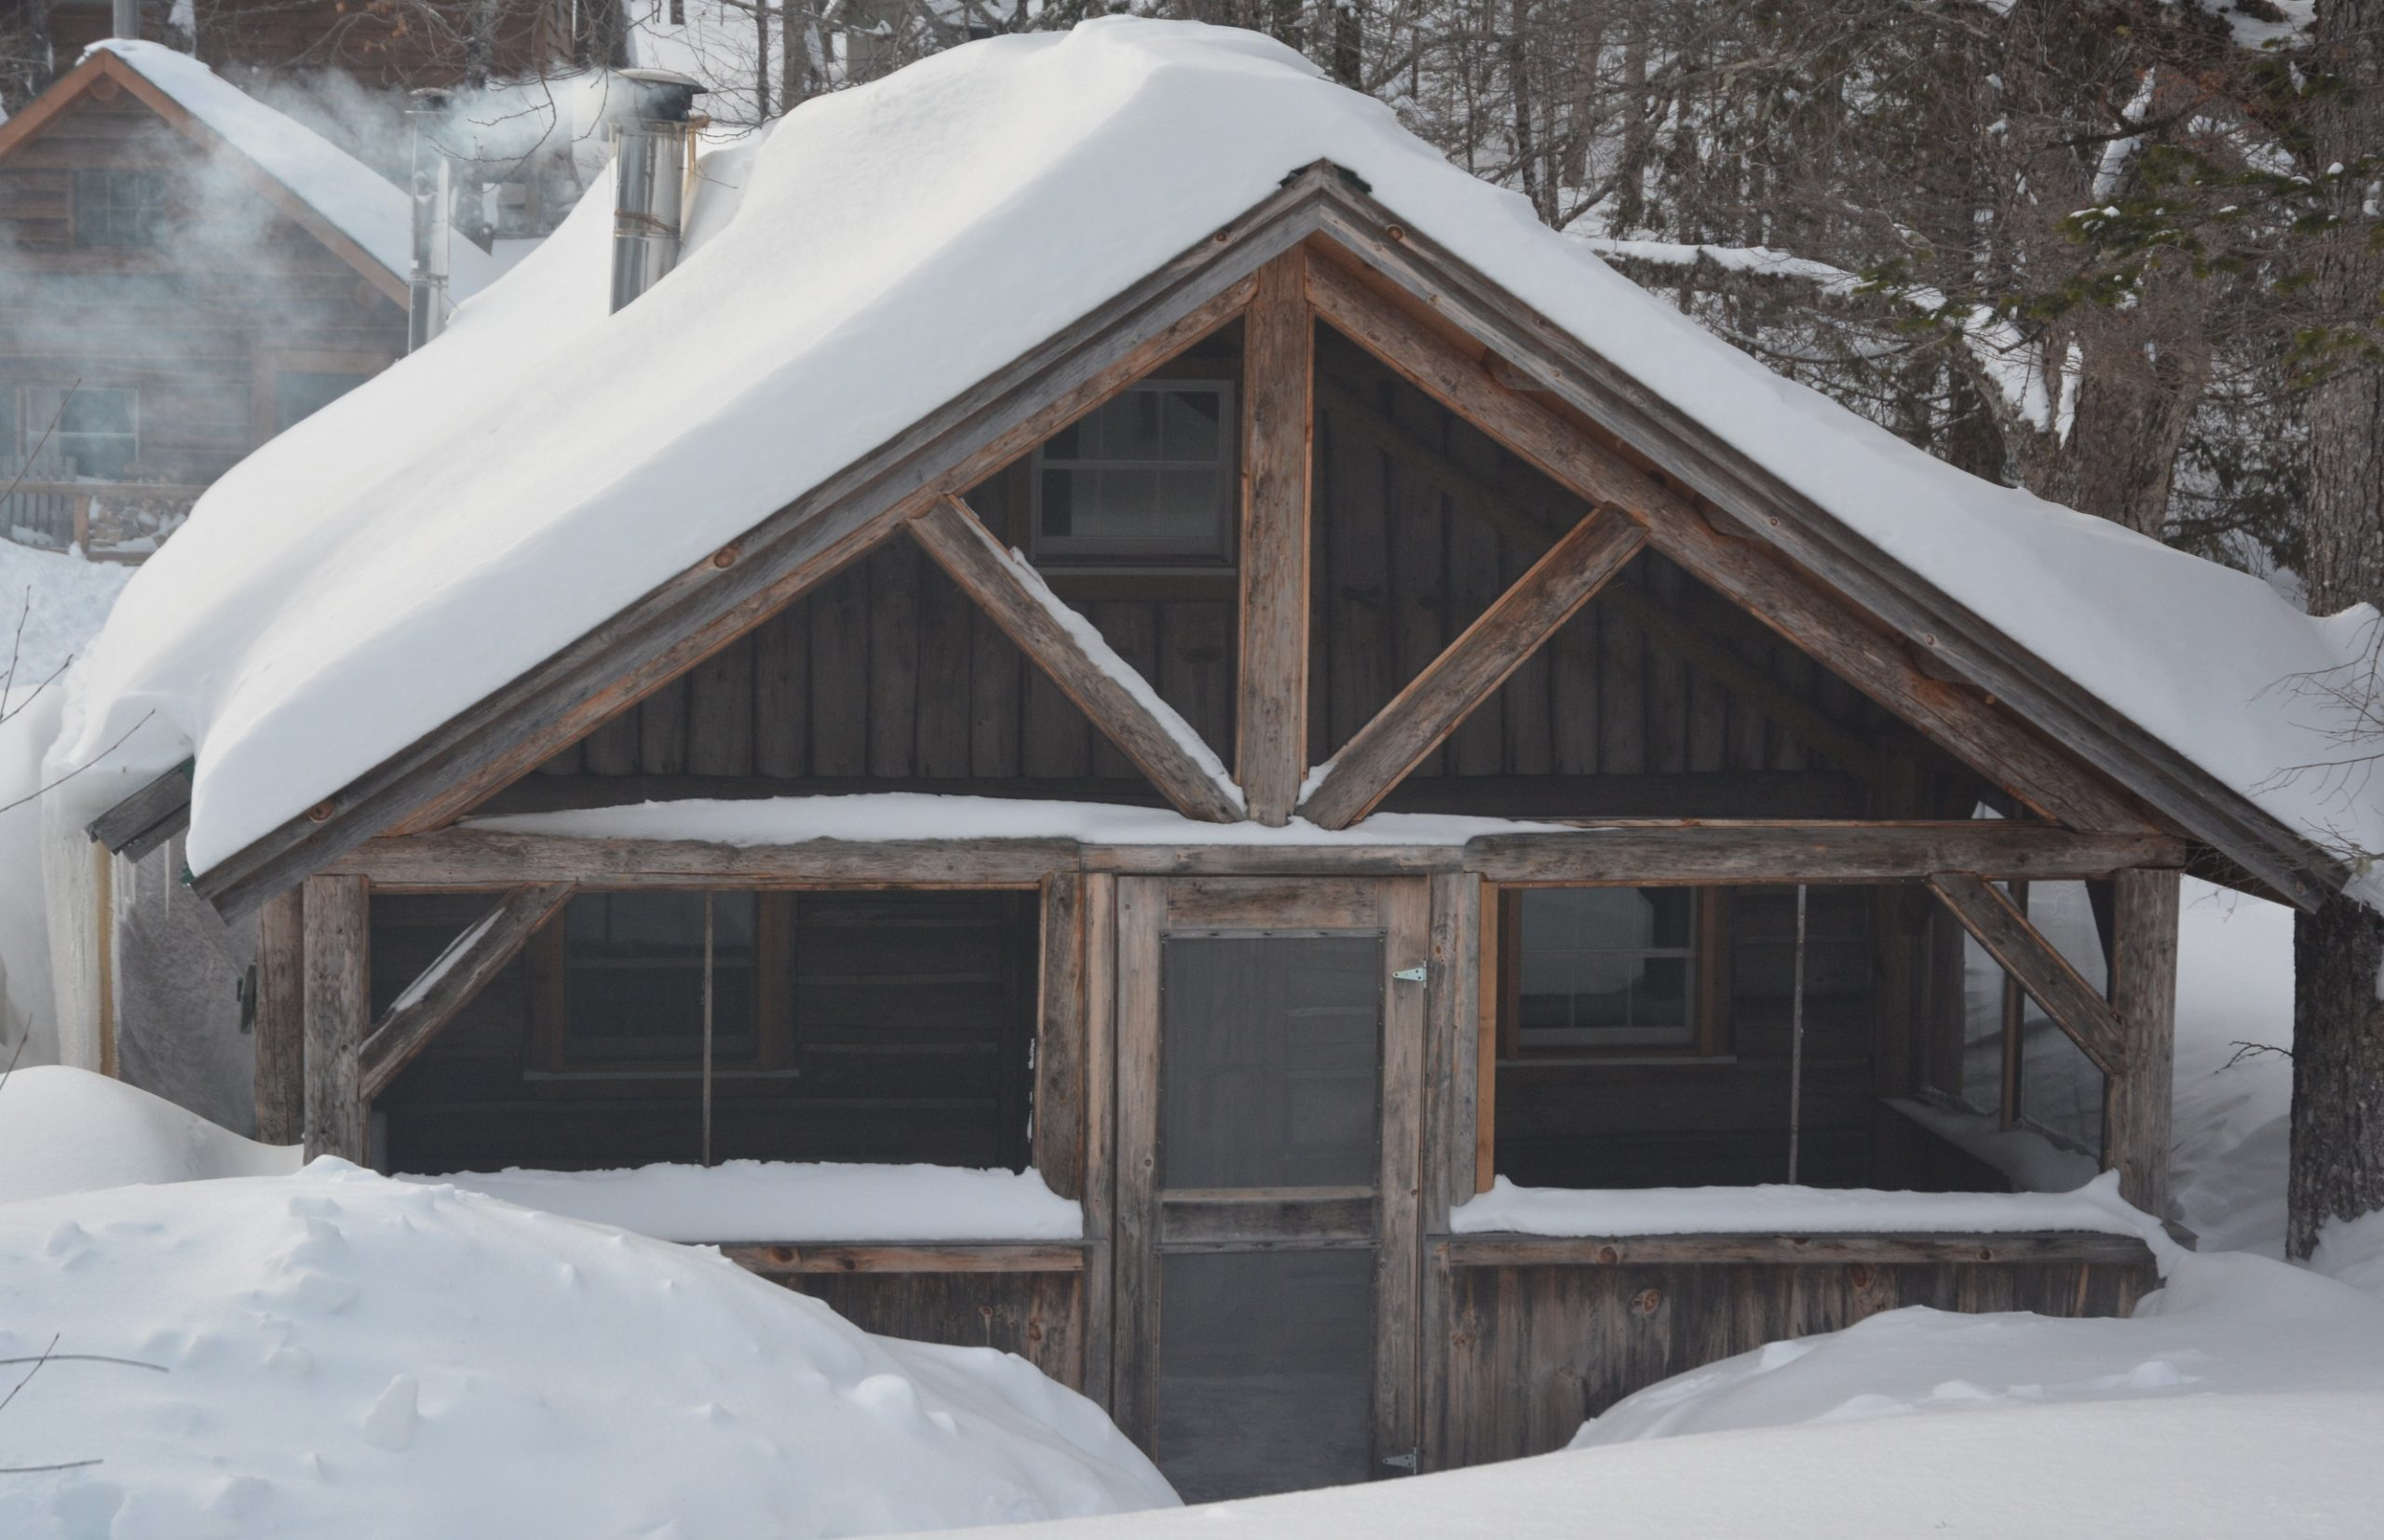 Heavy snow blankets a cabin at Little Lyford, one of the options for a lodge-to-lodge, cross-country skiing adventure